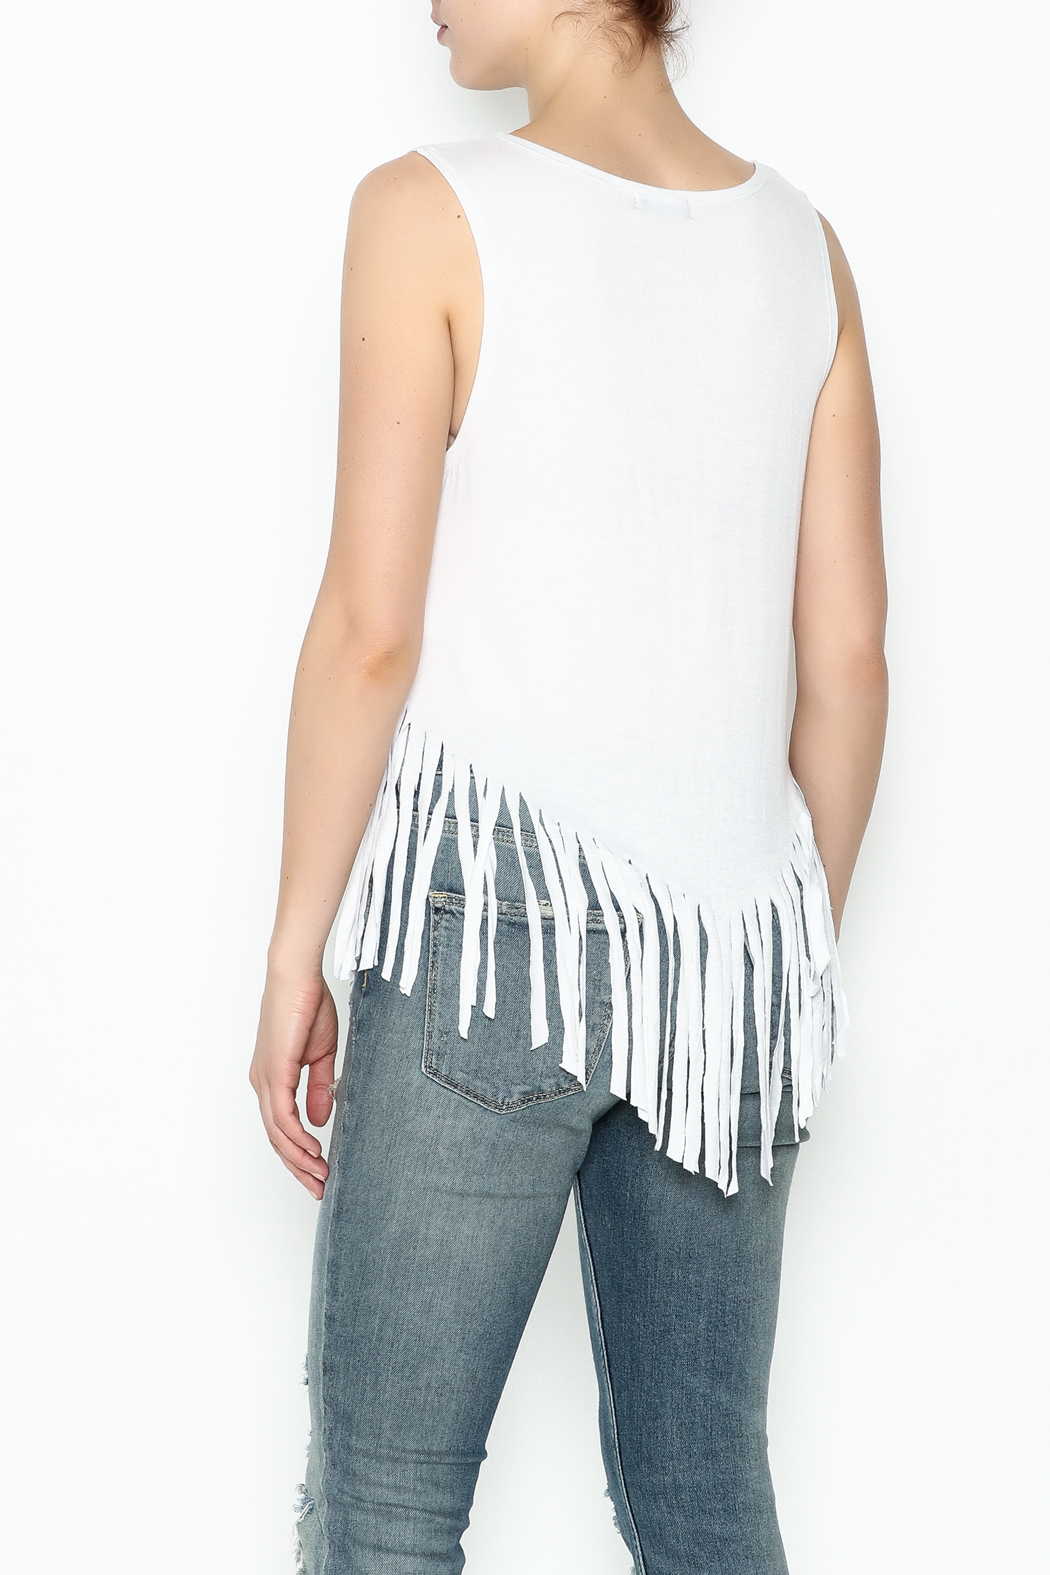 Popular Basics White Fringed Tank Top - Back Cropped Image